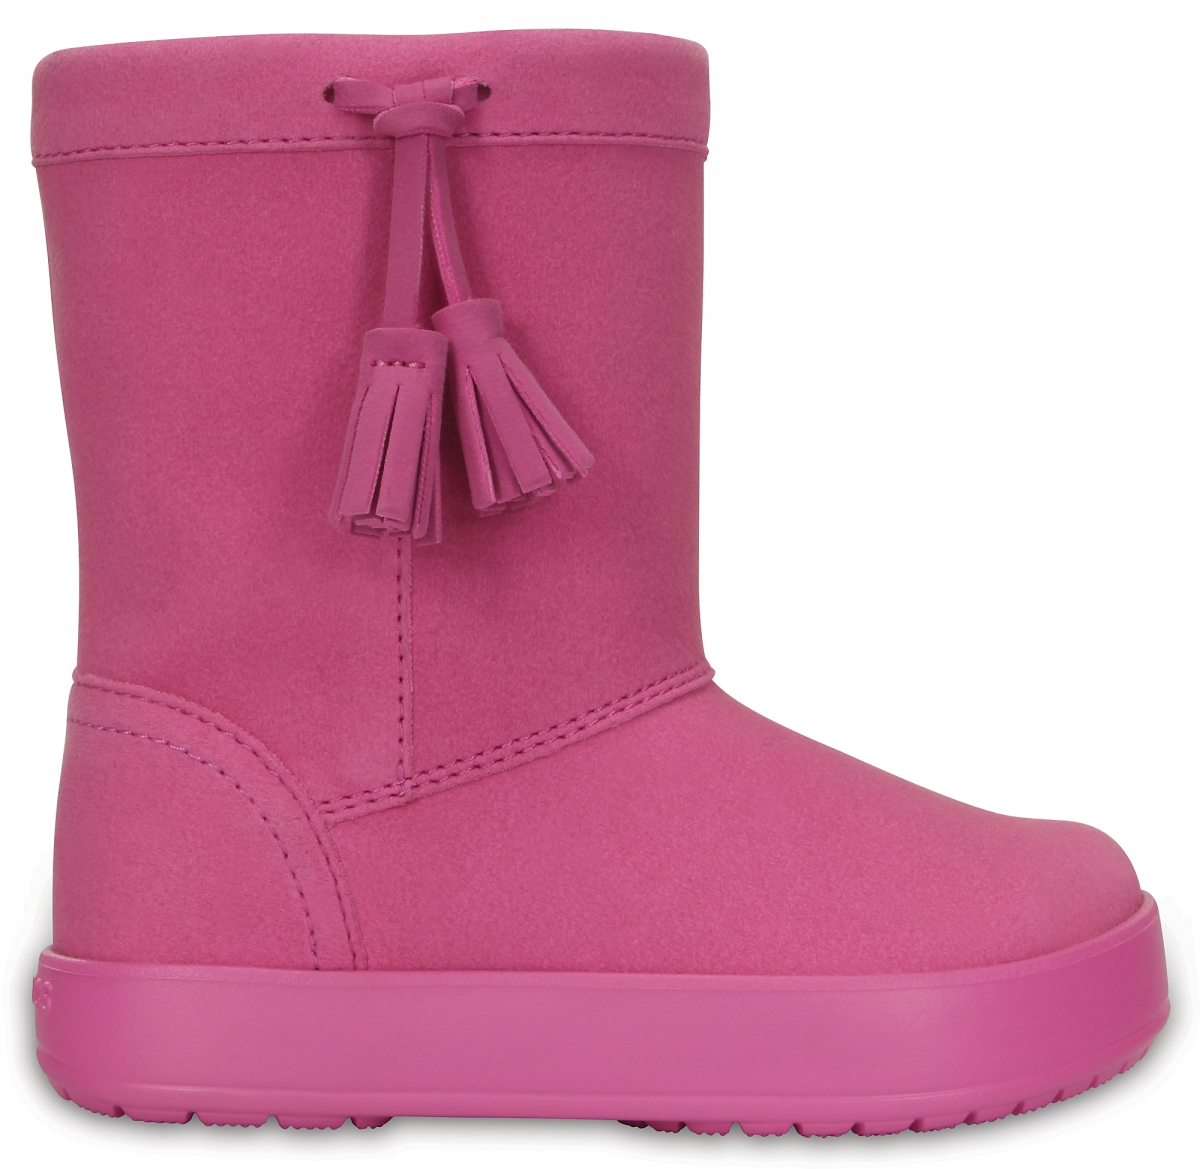 Crocs LodgePoint Boot Kids - Party Pink, C11 (28-29)